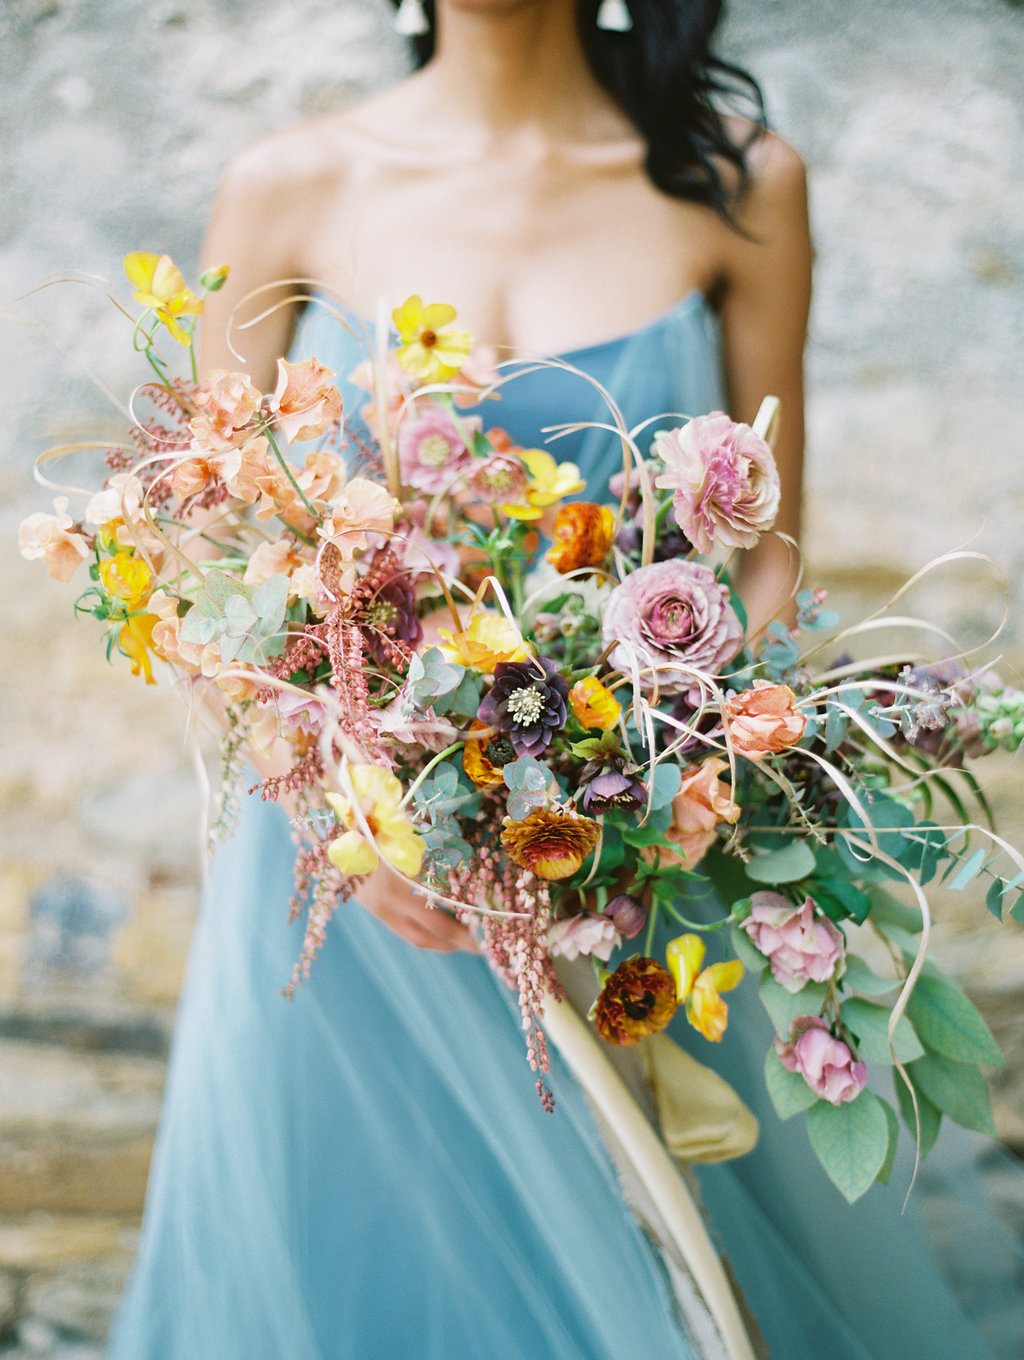 yellow and pink wedding bouquets - photo by Charla Storey http://ruffledblog.com/architectural-san-antonio-mission-wedding-inspiration